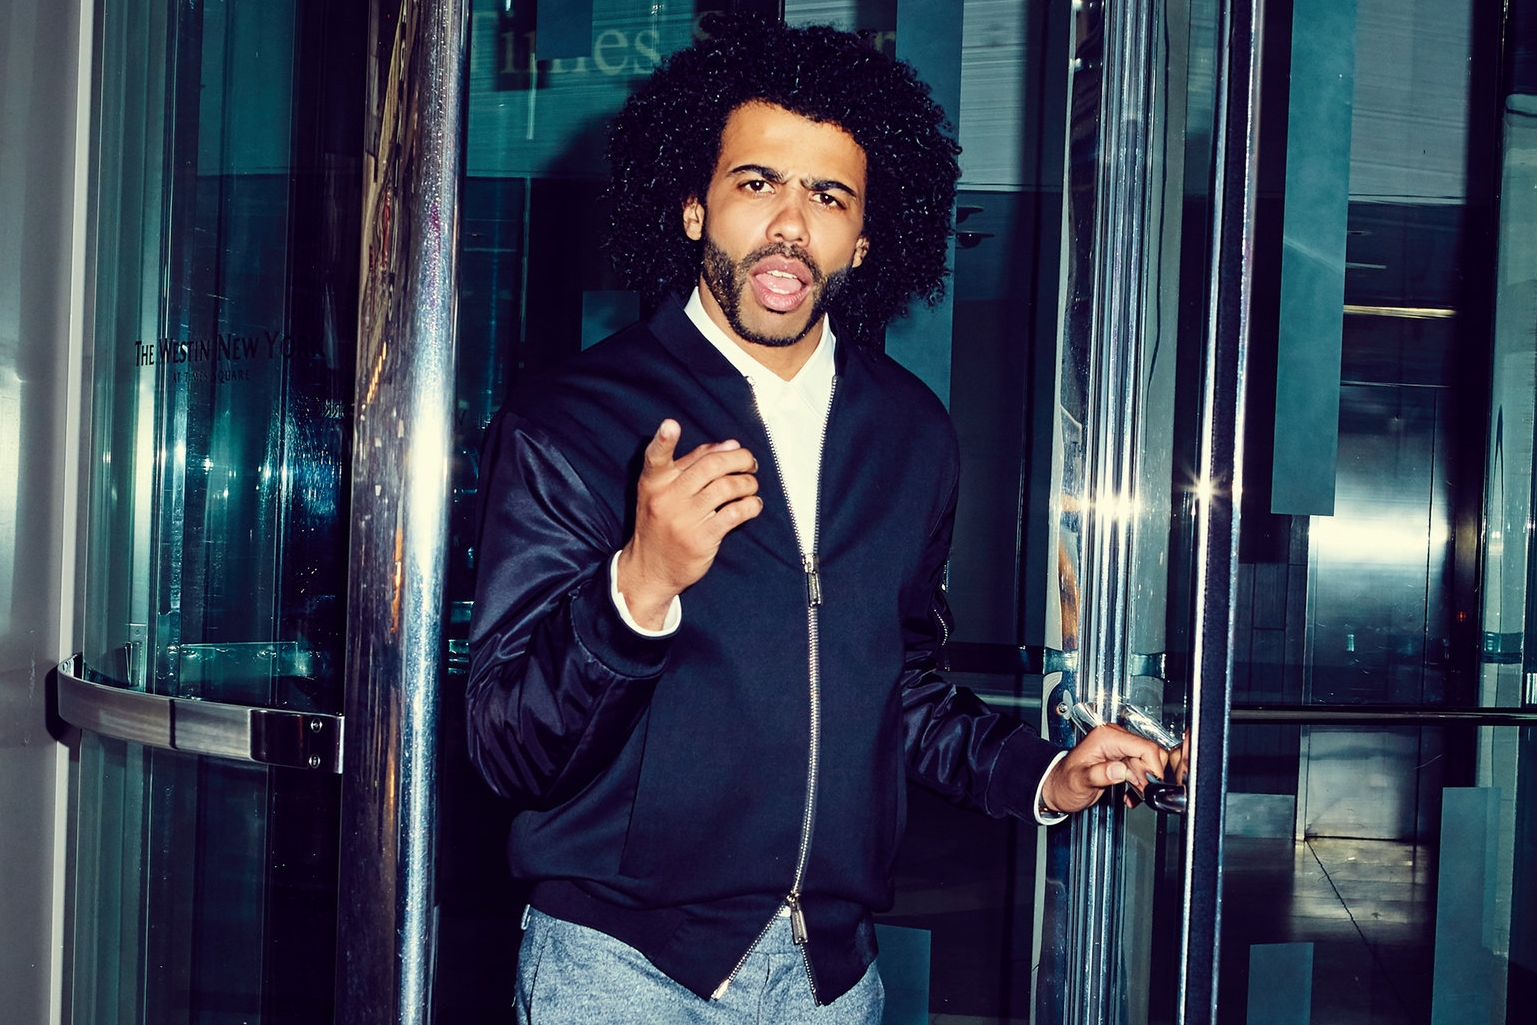 DAVEED DIGGS for ESQUIRE